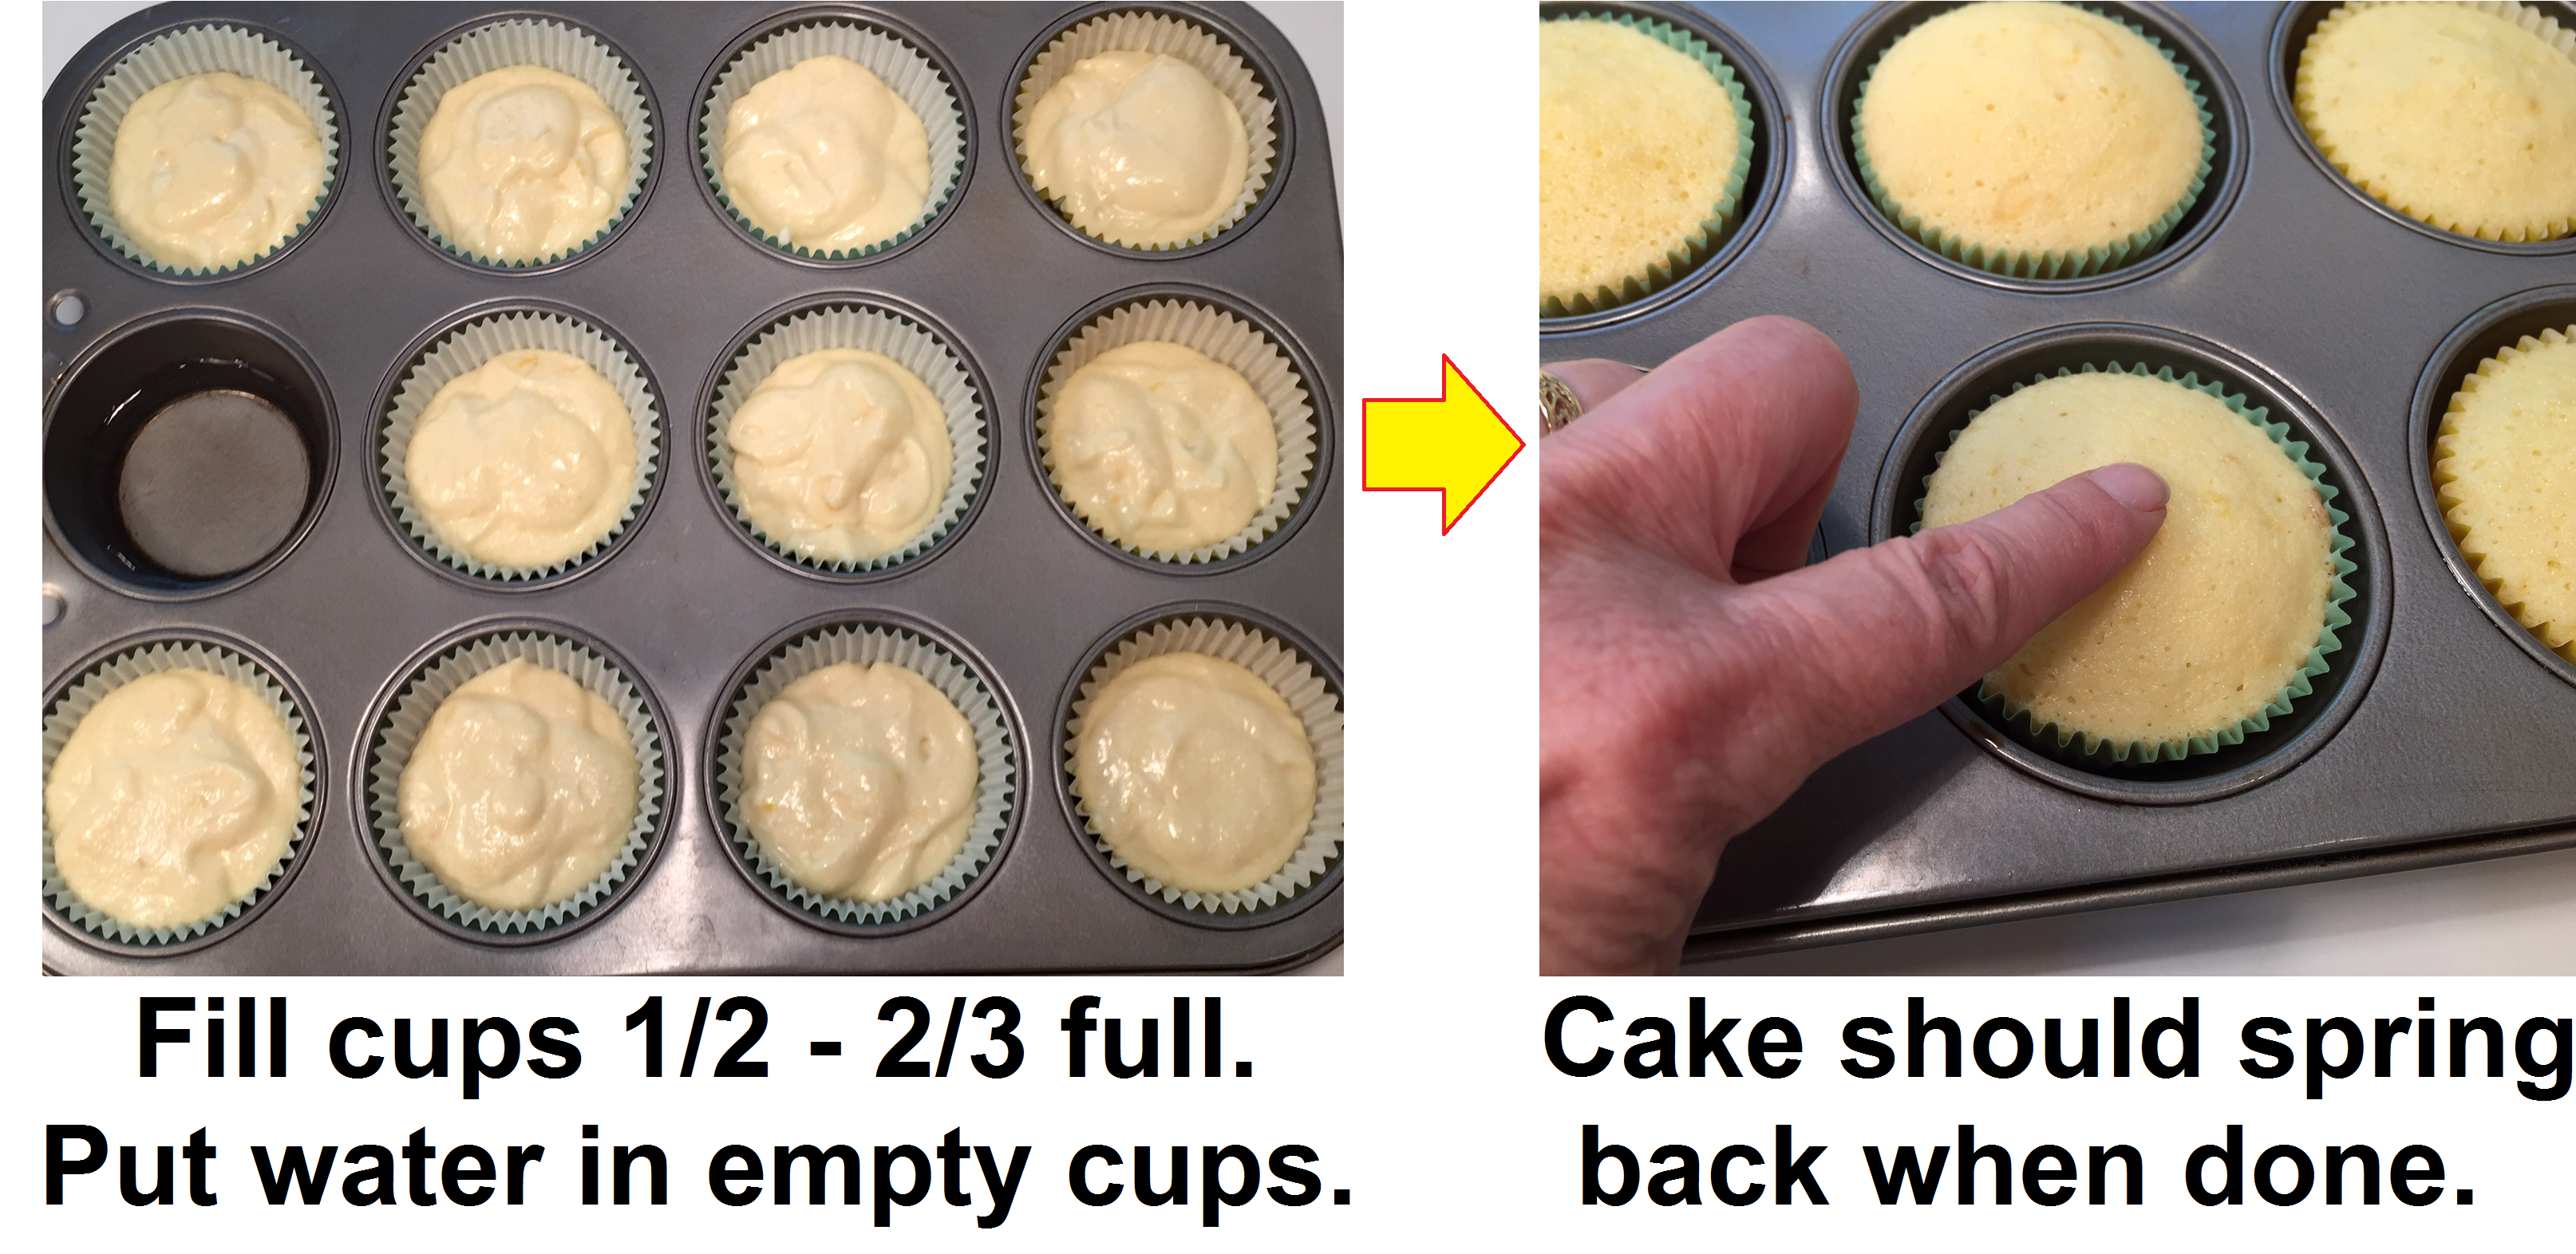 how full do you fill cupcakes